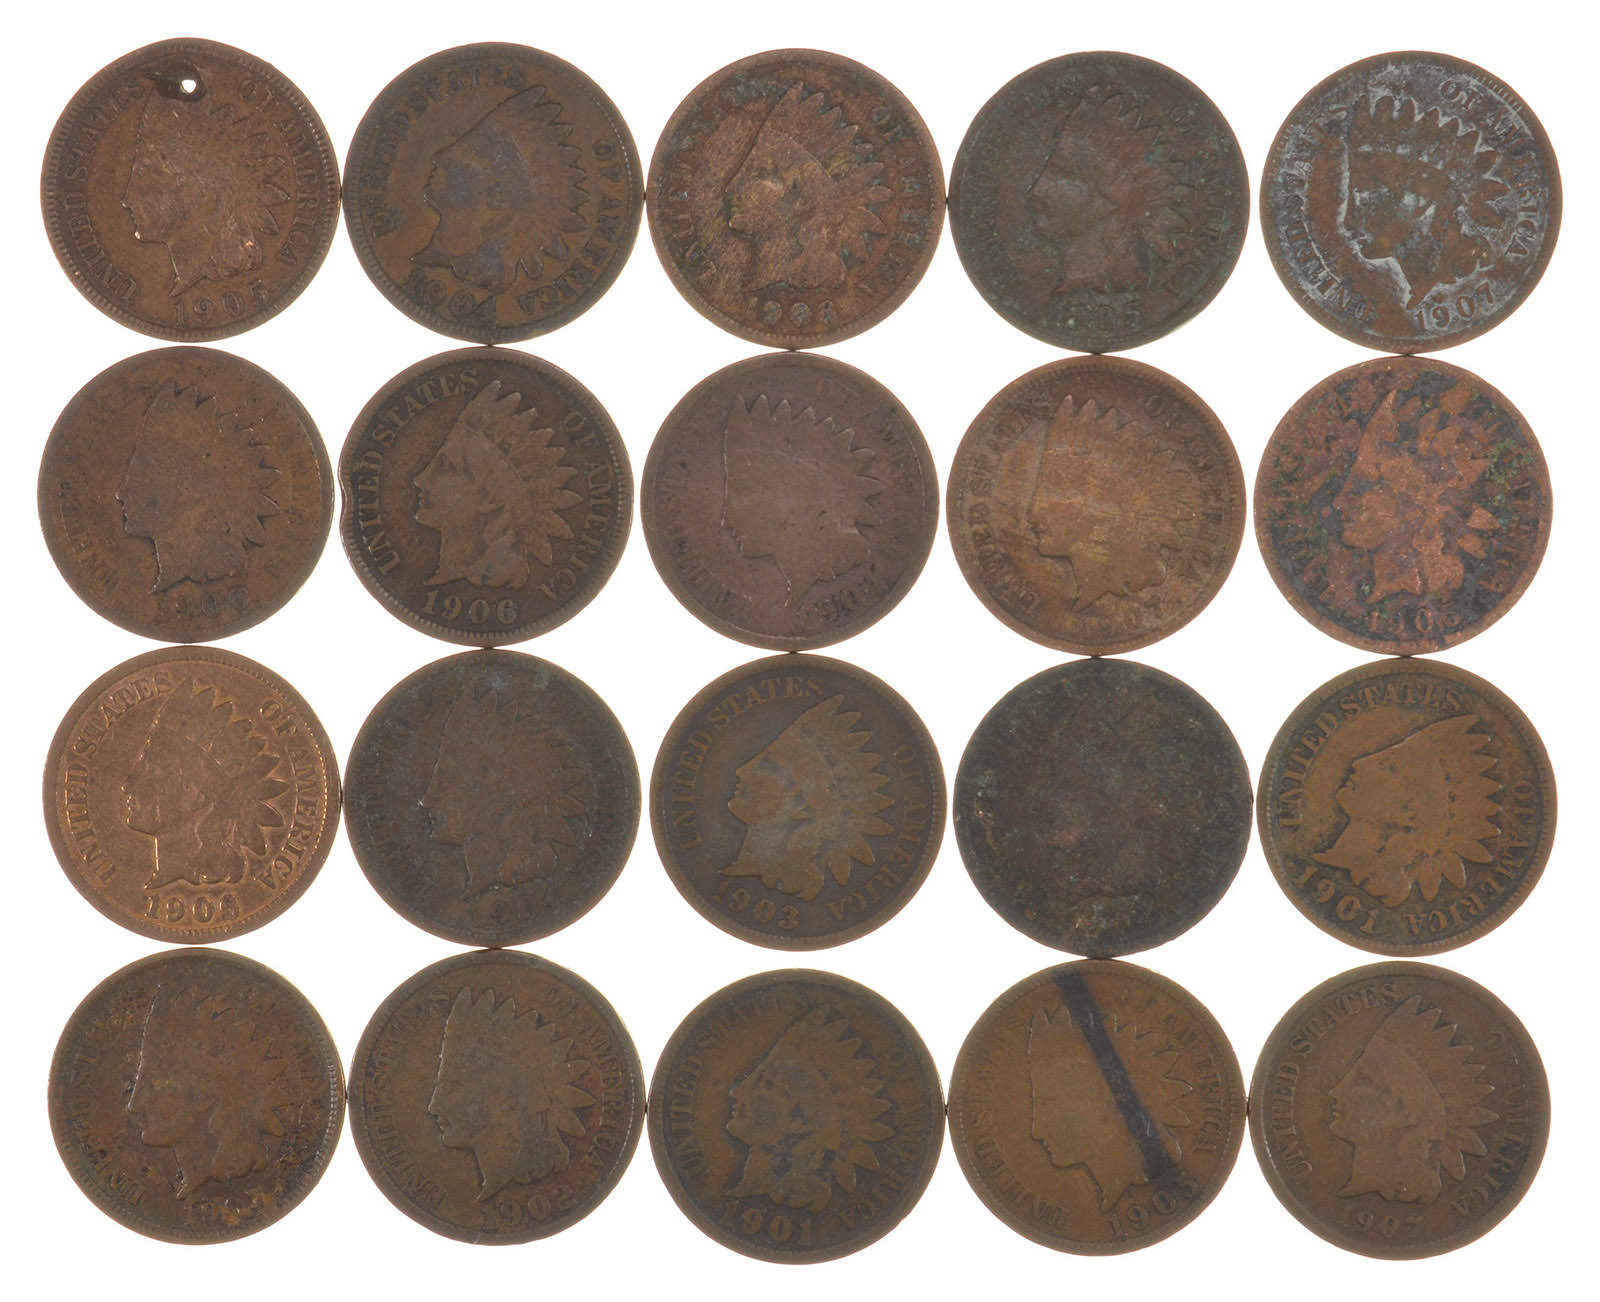 1 1900/'s Indian Head Penny Coin //// 1900-1909 //// Good or Better